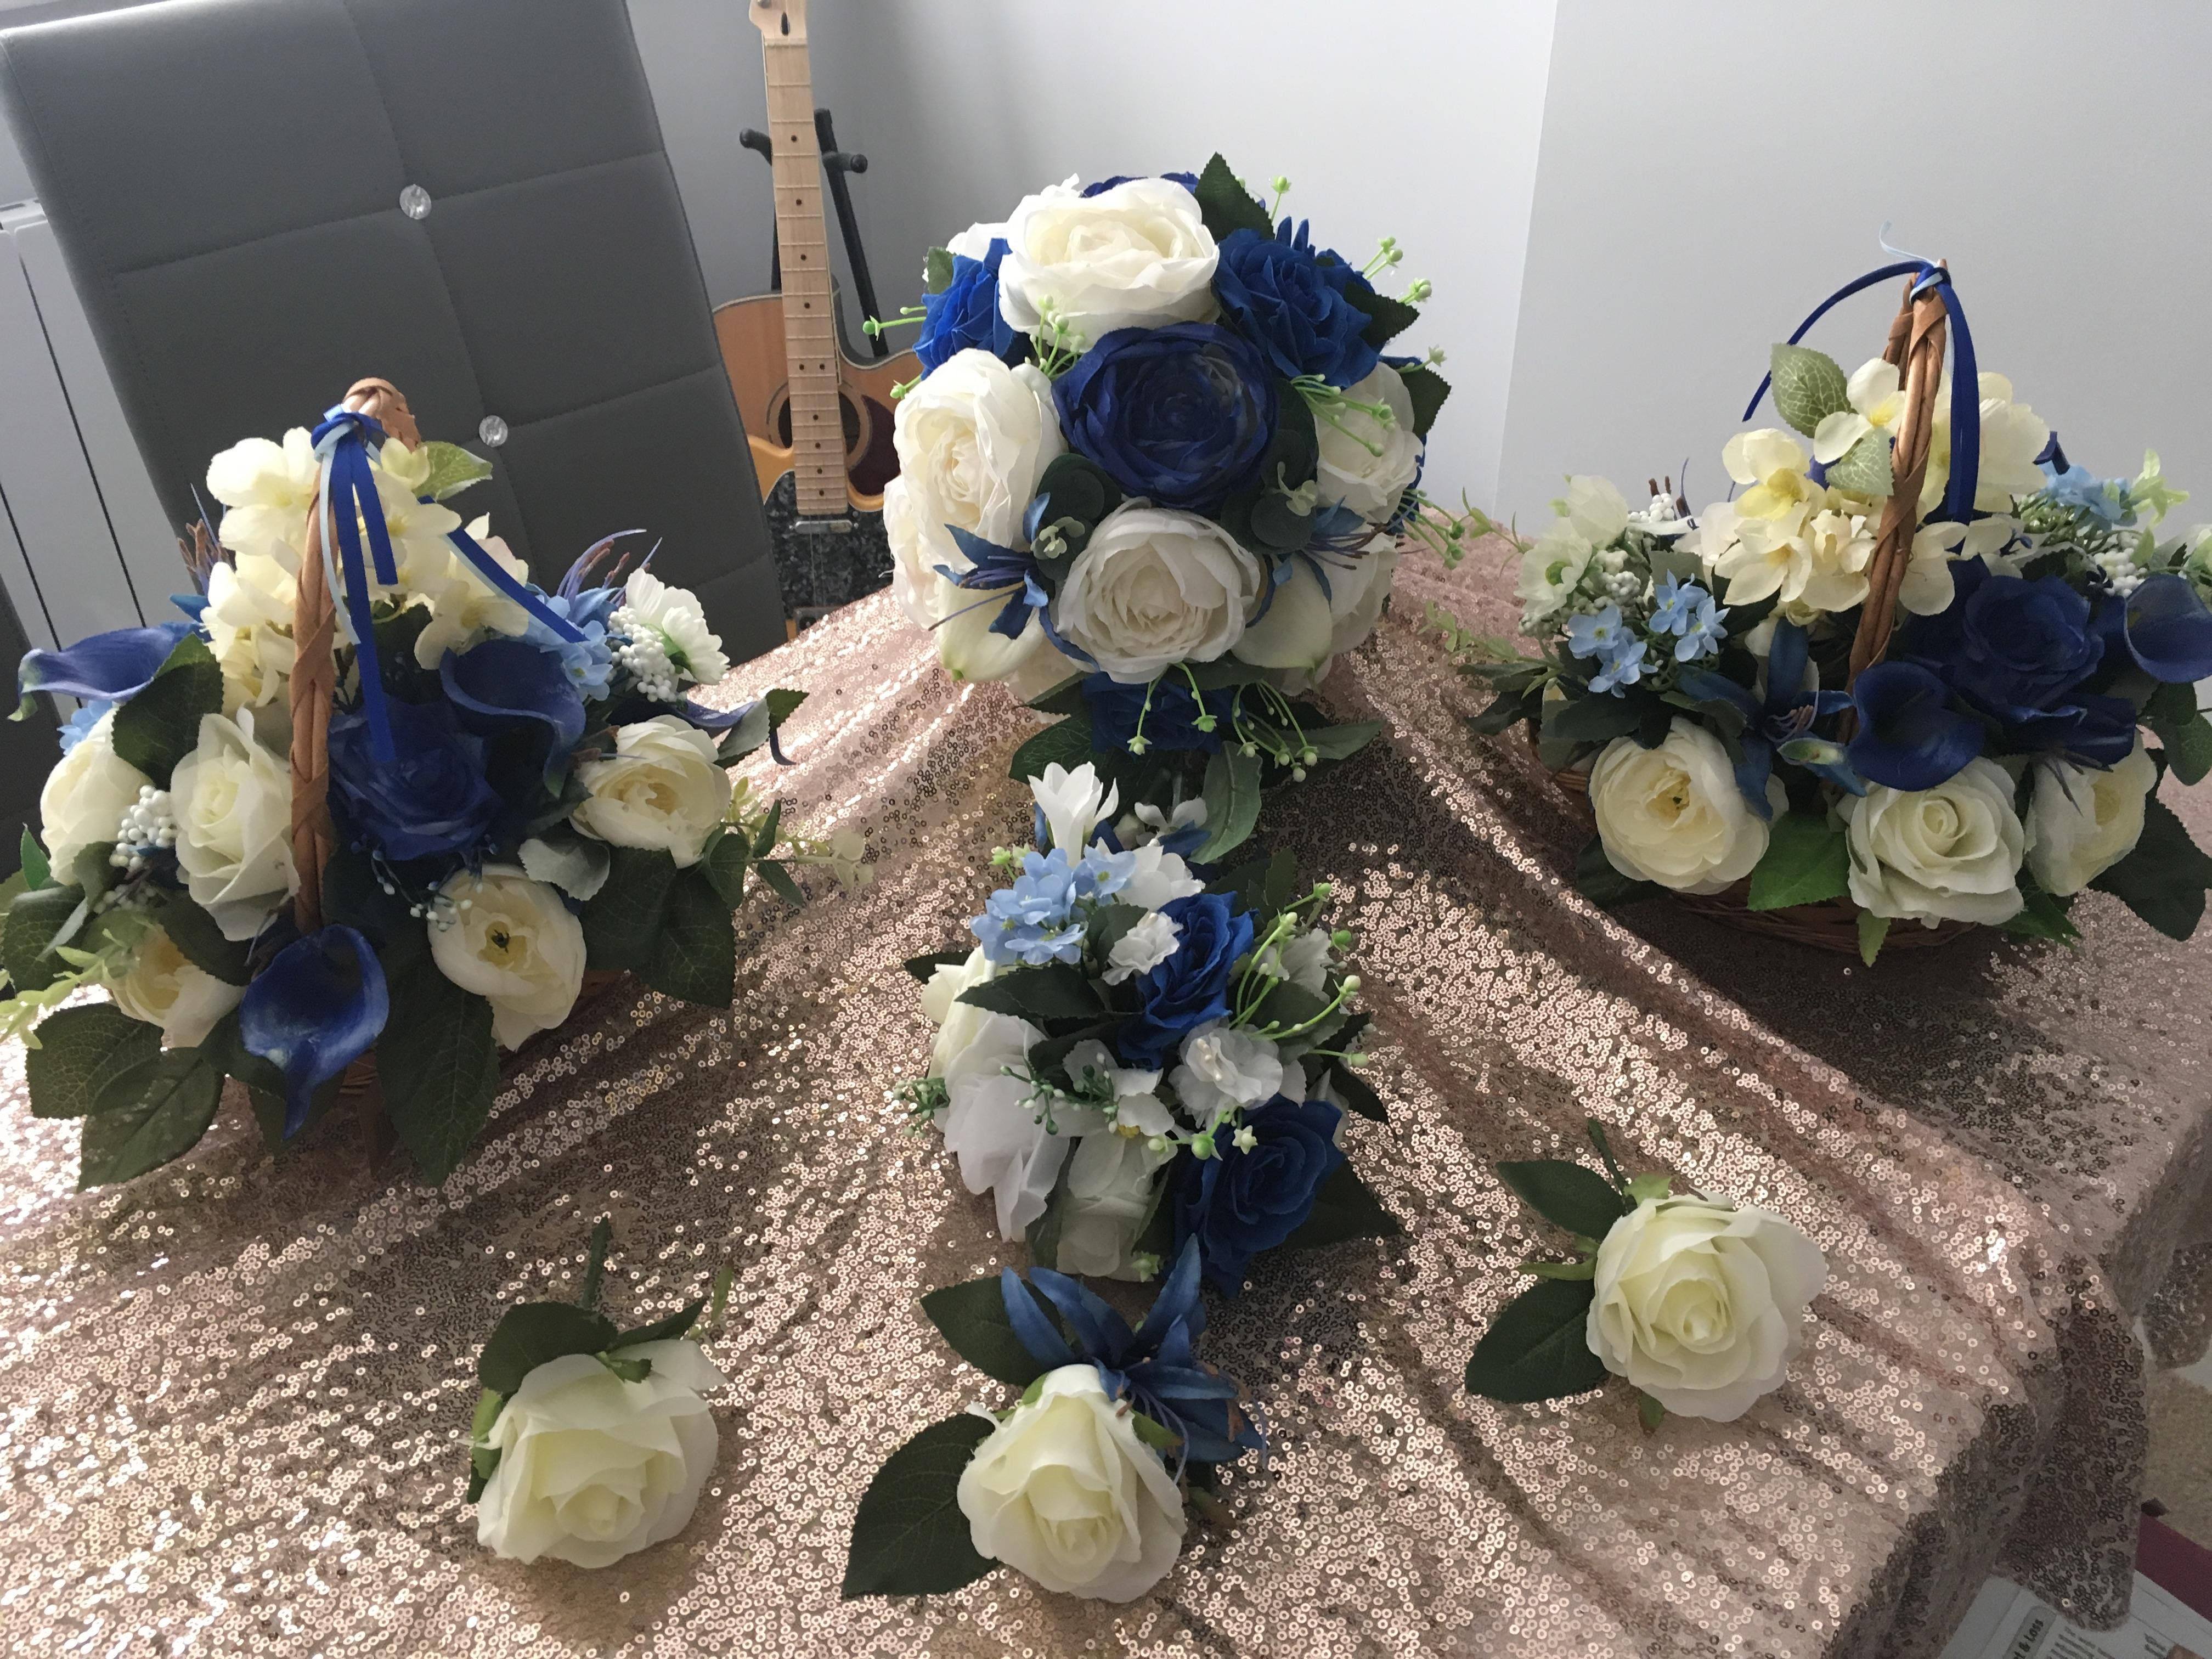 Winner weddings flowers silk sensations flowers for all occasions izmirmasajfo